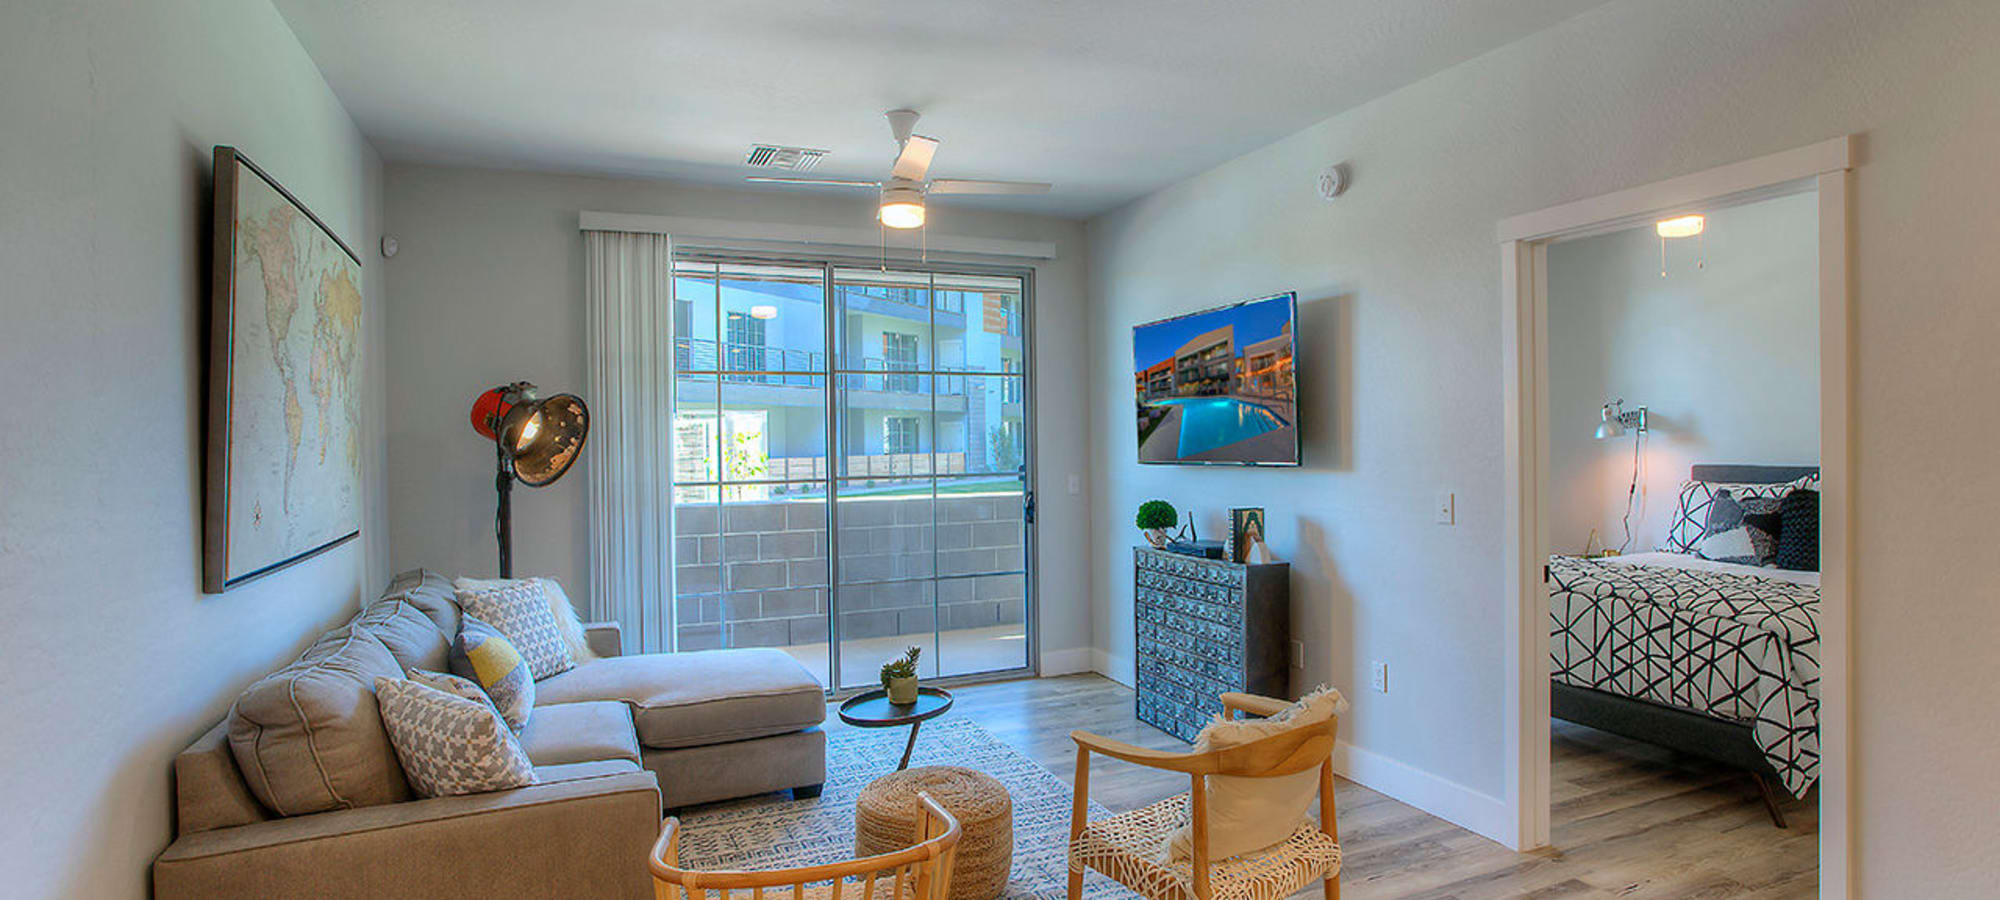 Photos Of District Lofts Luxury Apartments In Gilbert Az